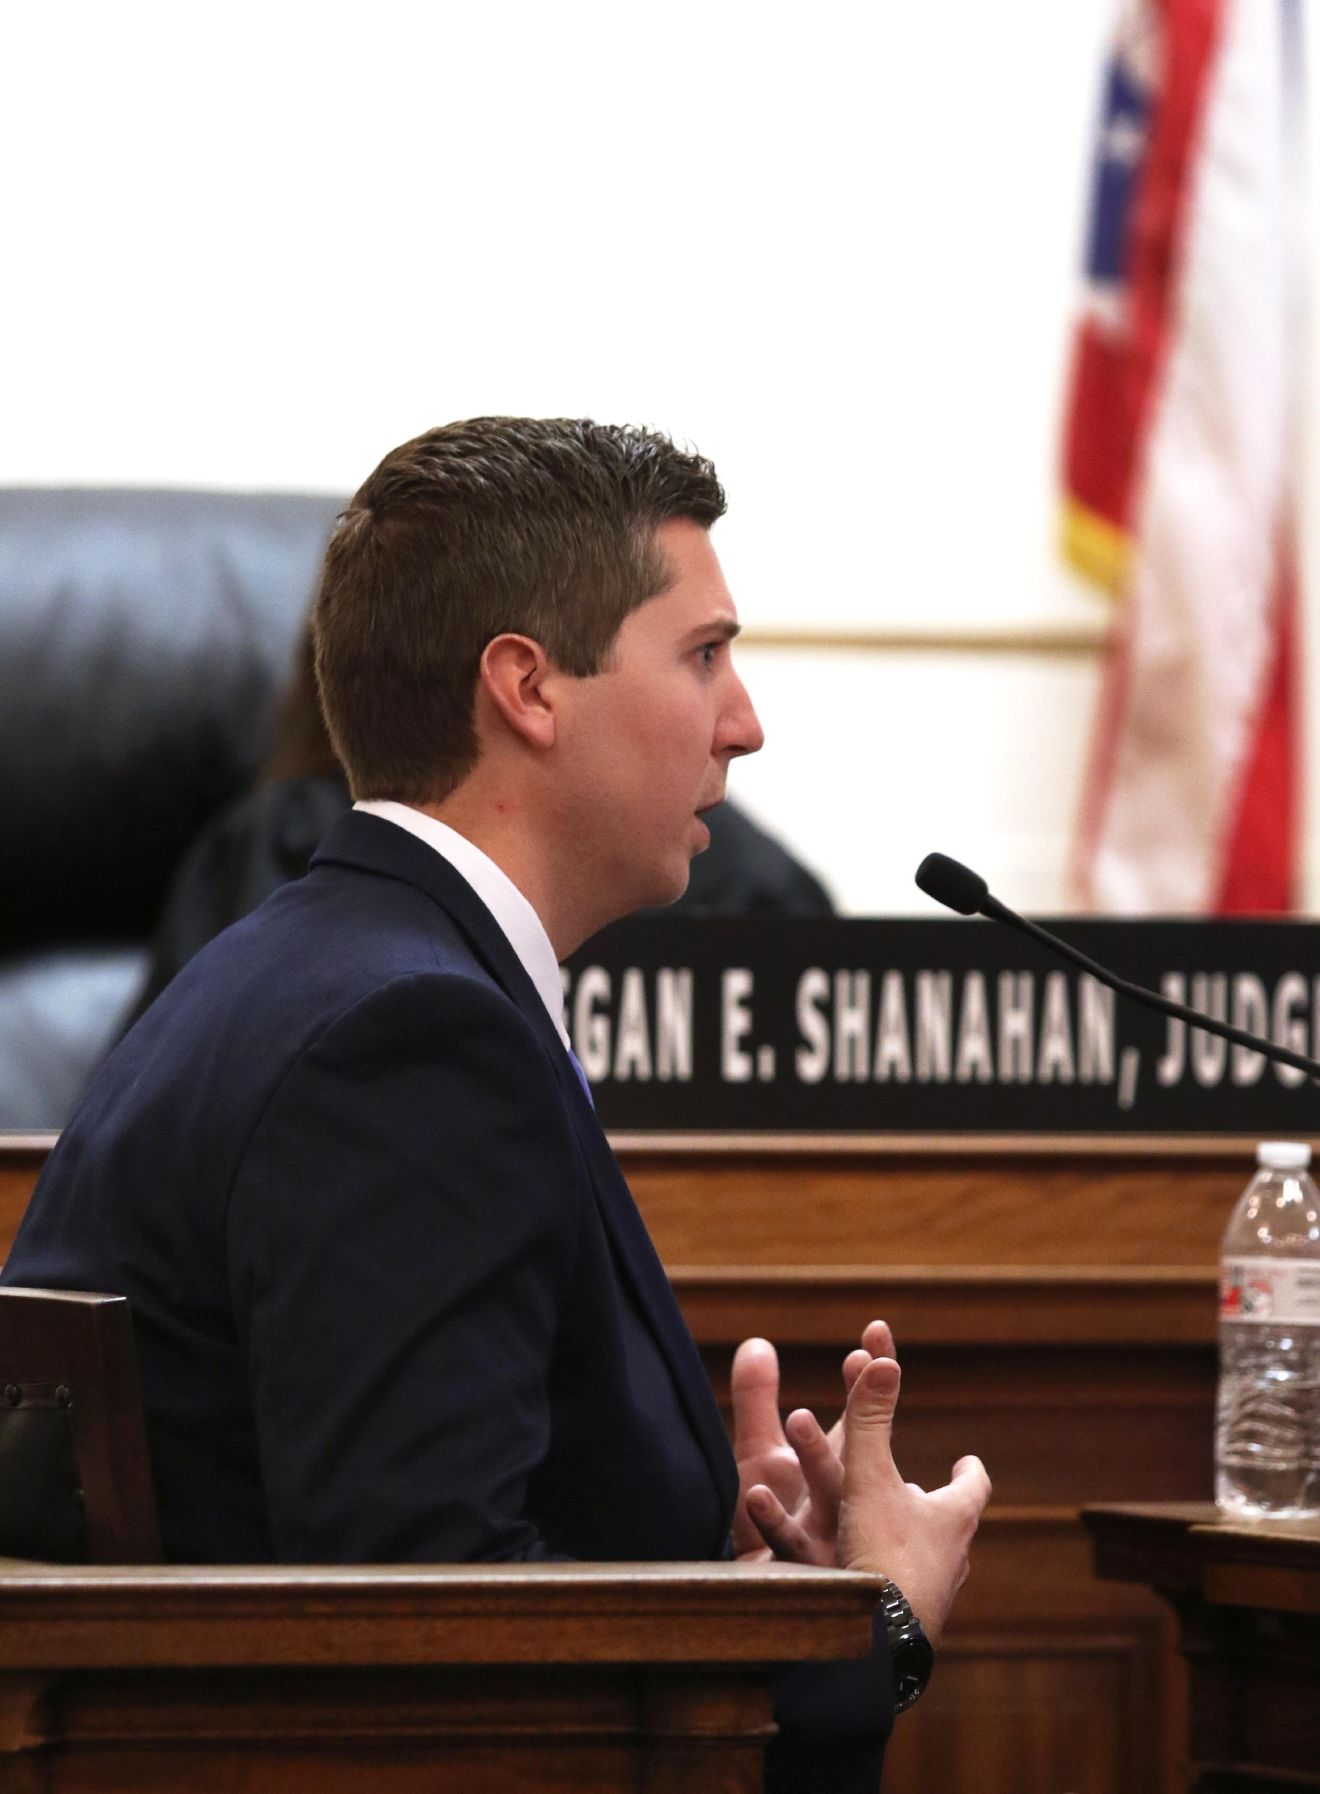 Tensing, the former University of Cincinnati police officer, is charged with murdering Sam DuBose during a routine traffic stop on July 19, 2015. Tensing's lawyer, Stew Mathews, has said Tensing fired a single shot because he feared for his life. (POOL, The Enquirer/Cara Owsley)